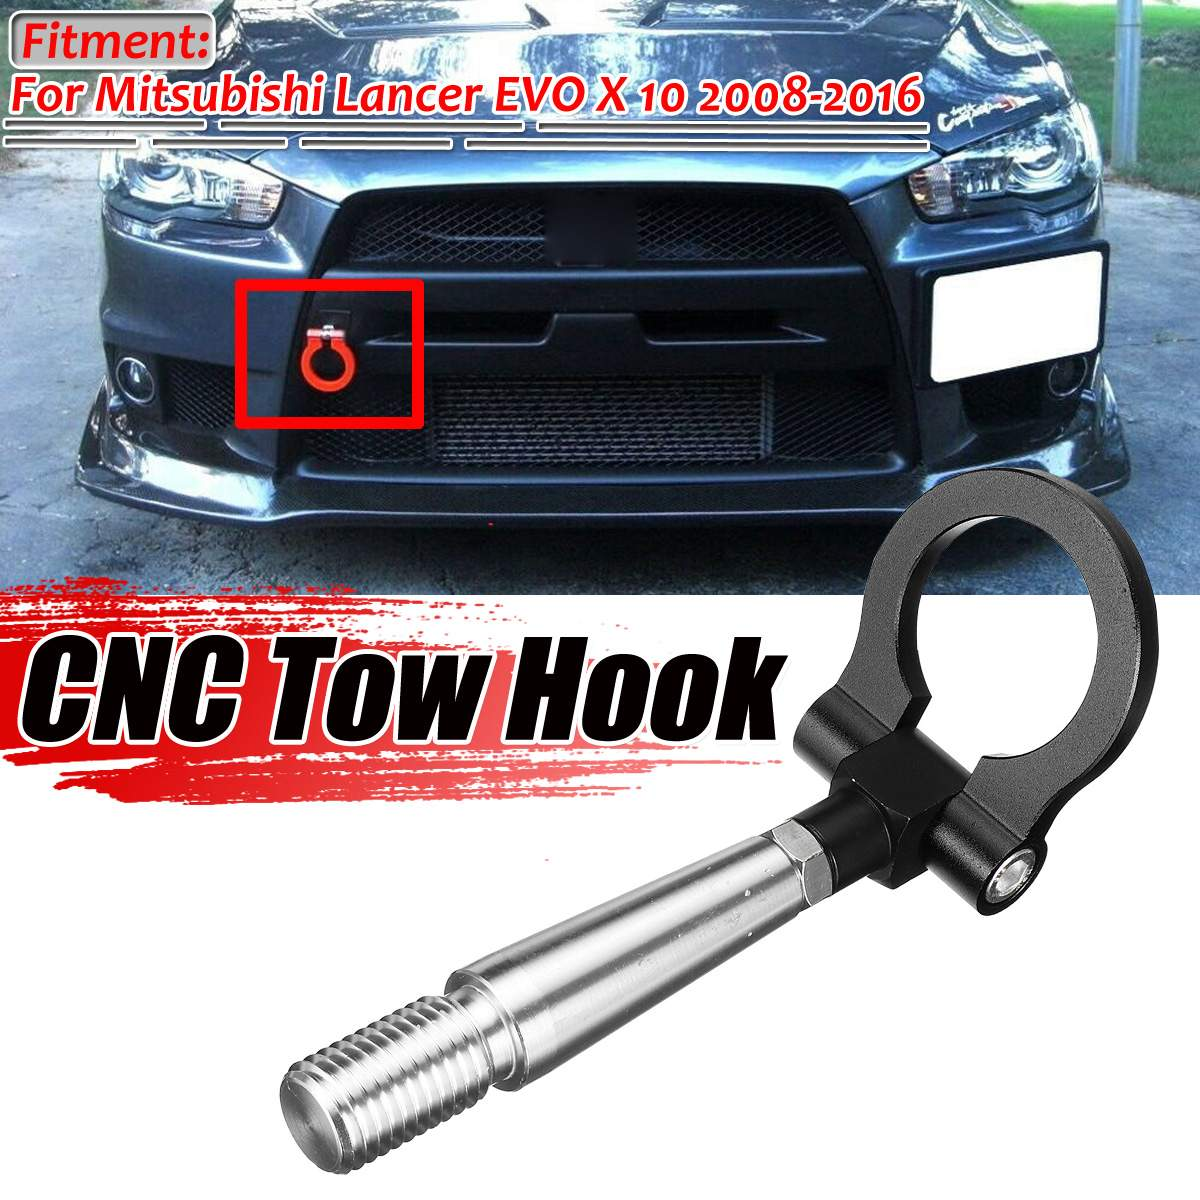 Black/Red/Blue Towing Bar For Car Track Racing CNC Tow Ring Hook Kit For Mitsubishi Lancer EVO X 10 2008-2016 Trailer Towing Bar